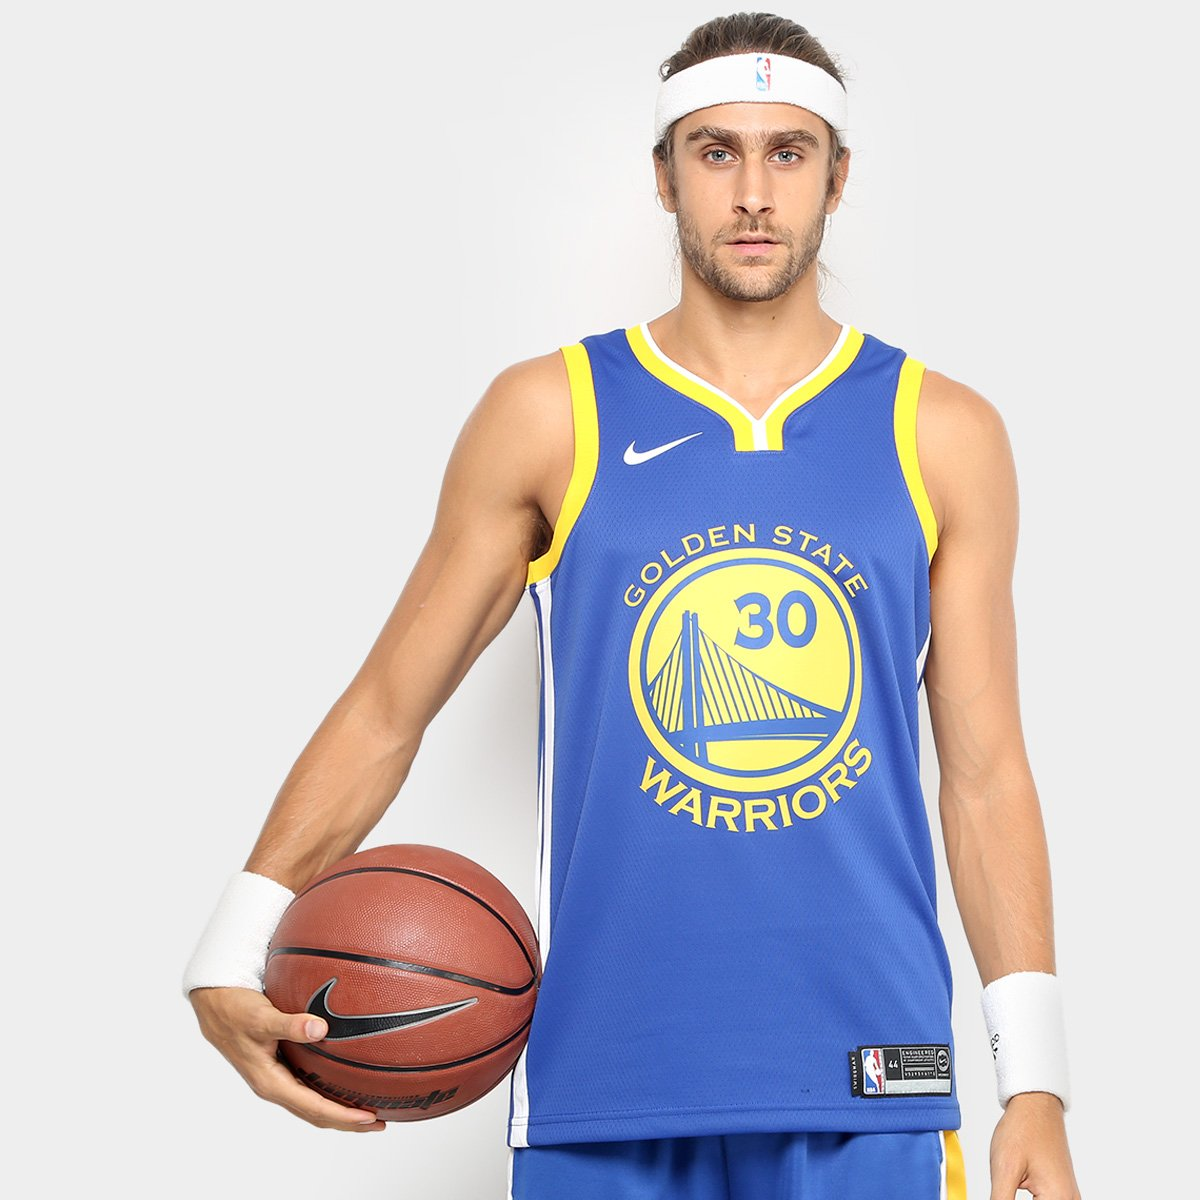 Regata Swingman NBA Golden State Warriors Nike Road Curry - Azul e amarelo  - Compre Agora  45601a7c5ba